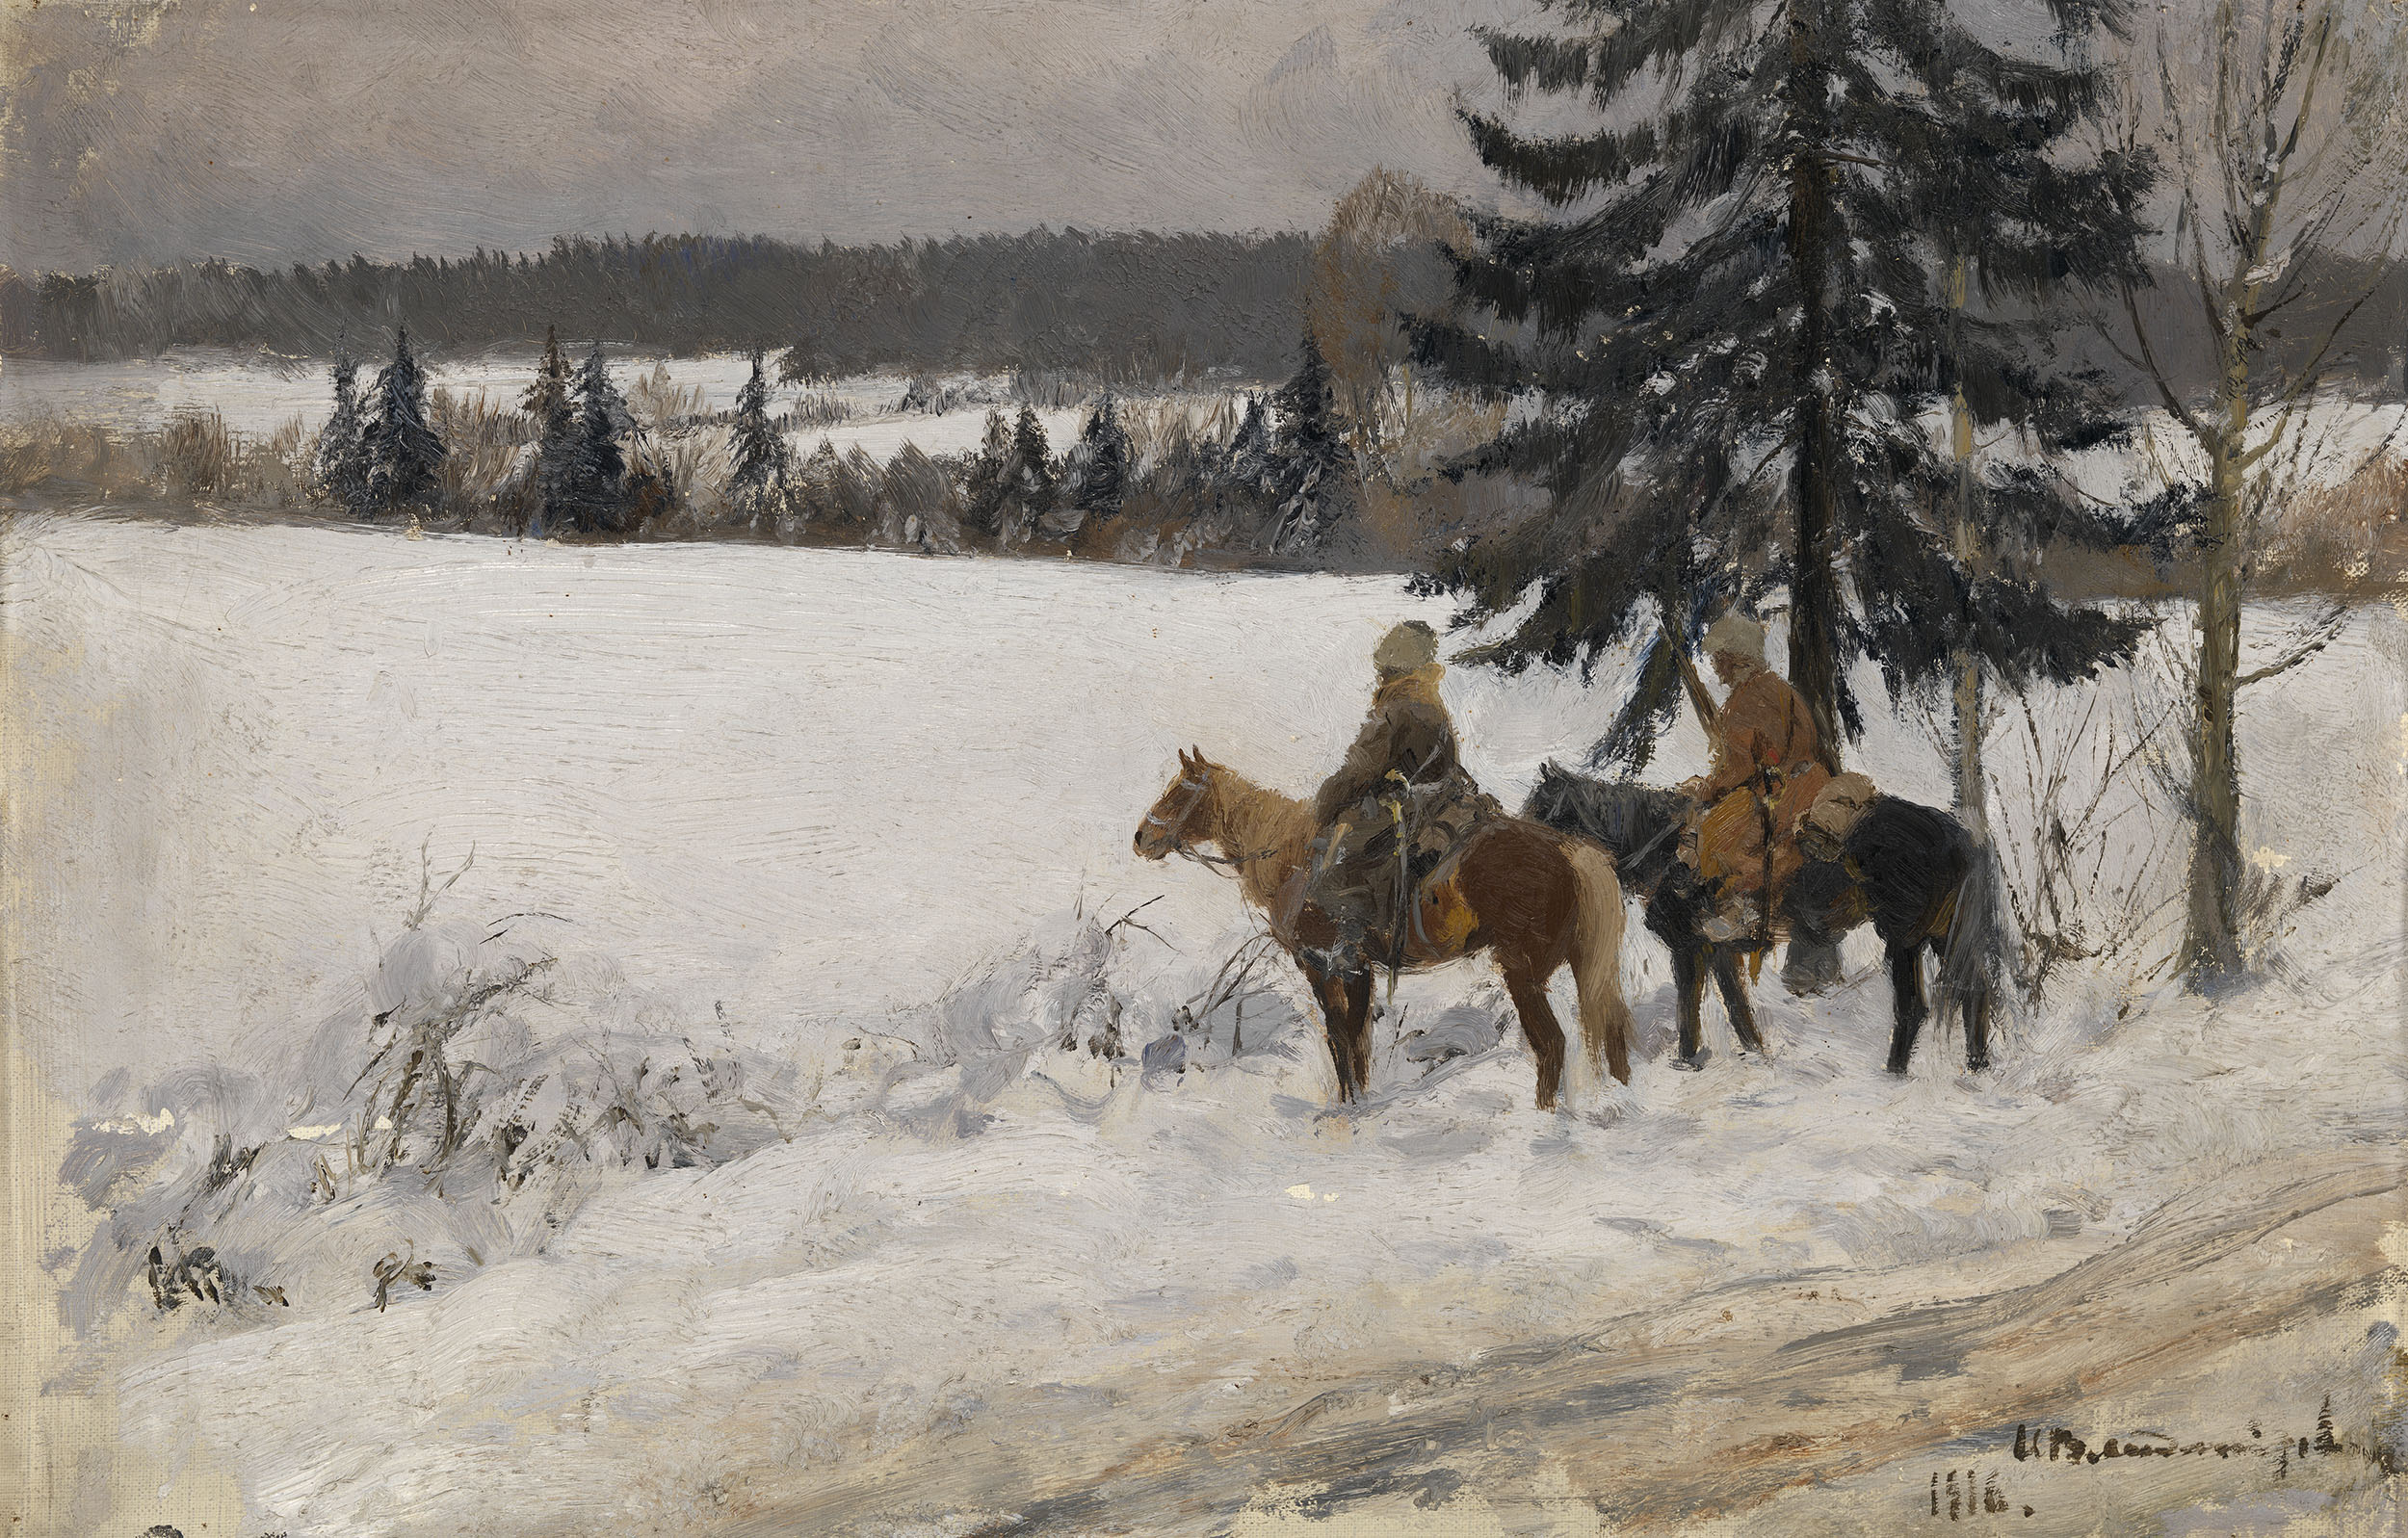 VLADIMIROV, IVAN Winter Scene with Two Cossack Horsemen